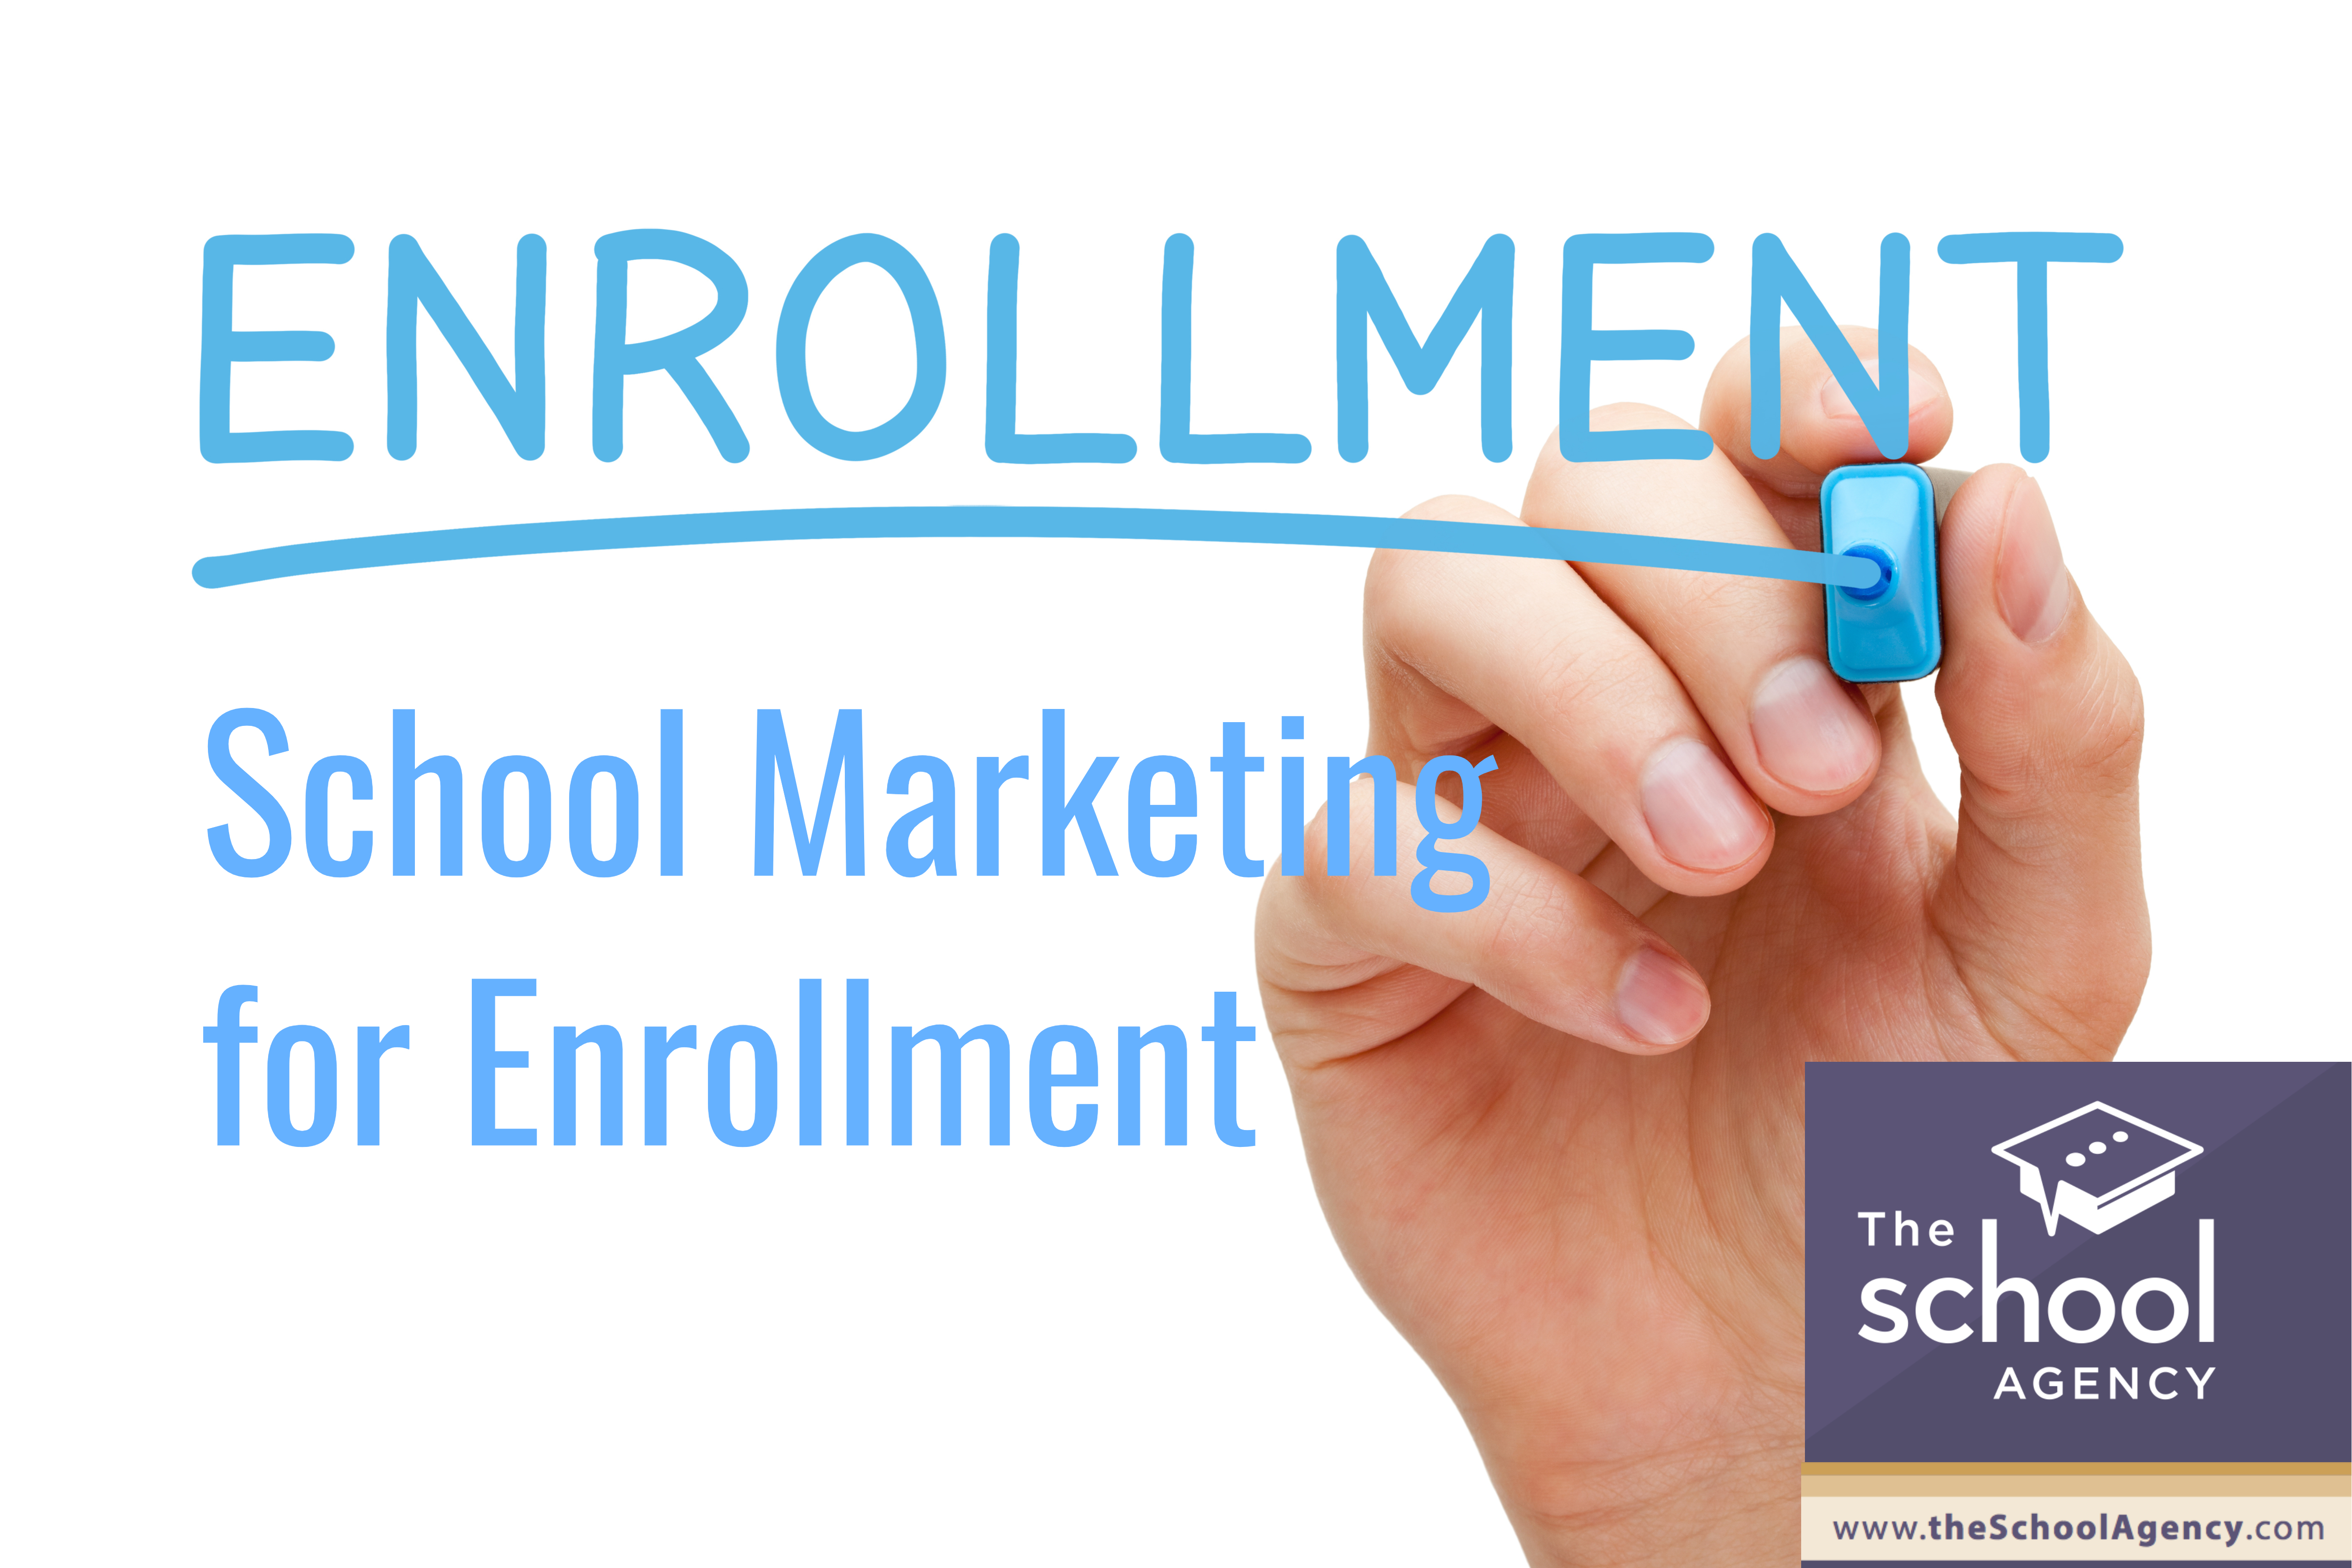 School Marketing to increase enrollment inquiries